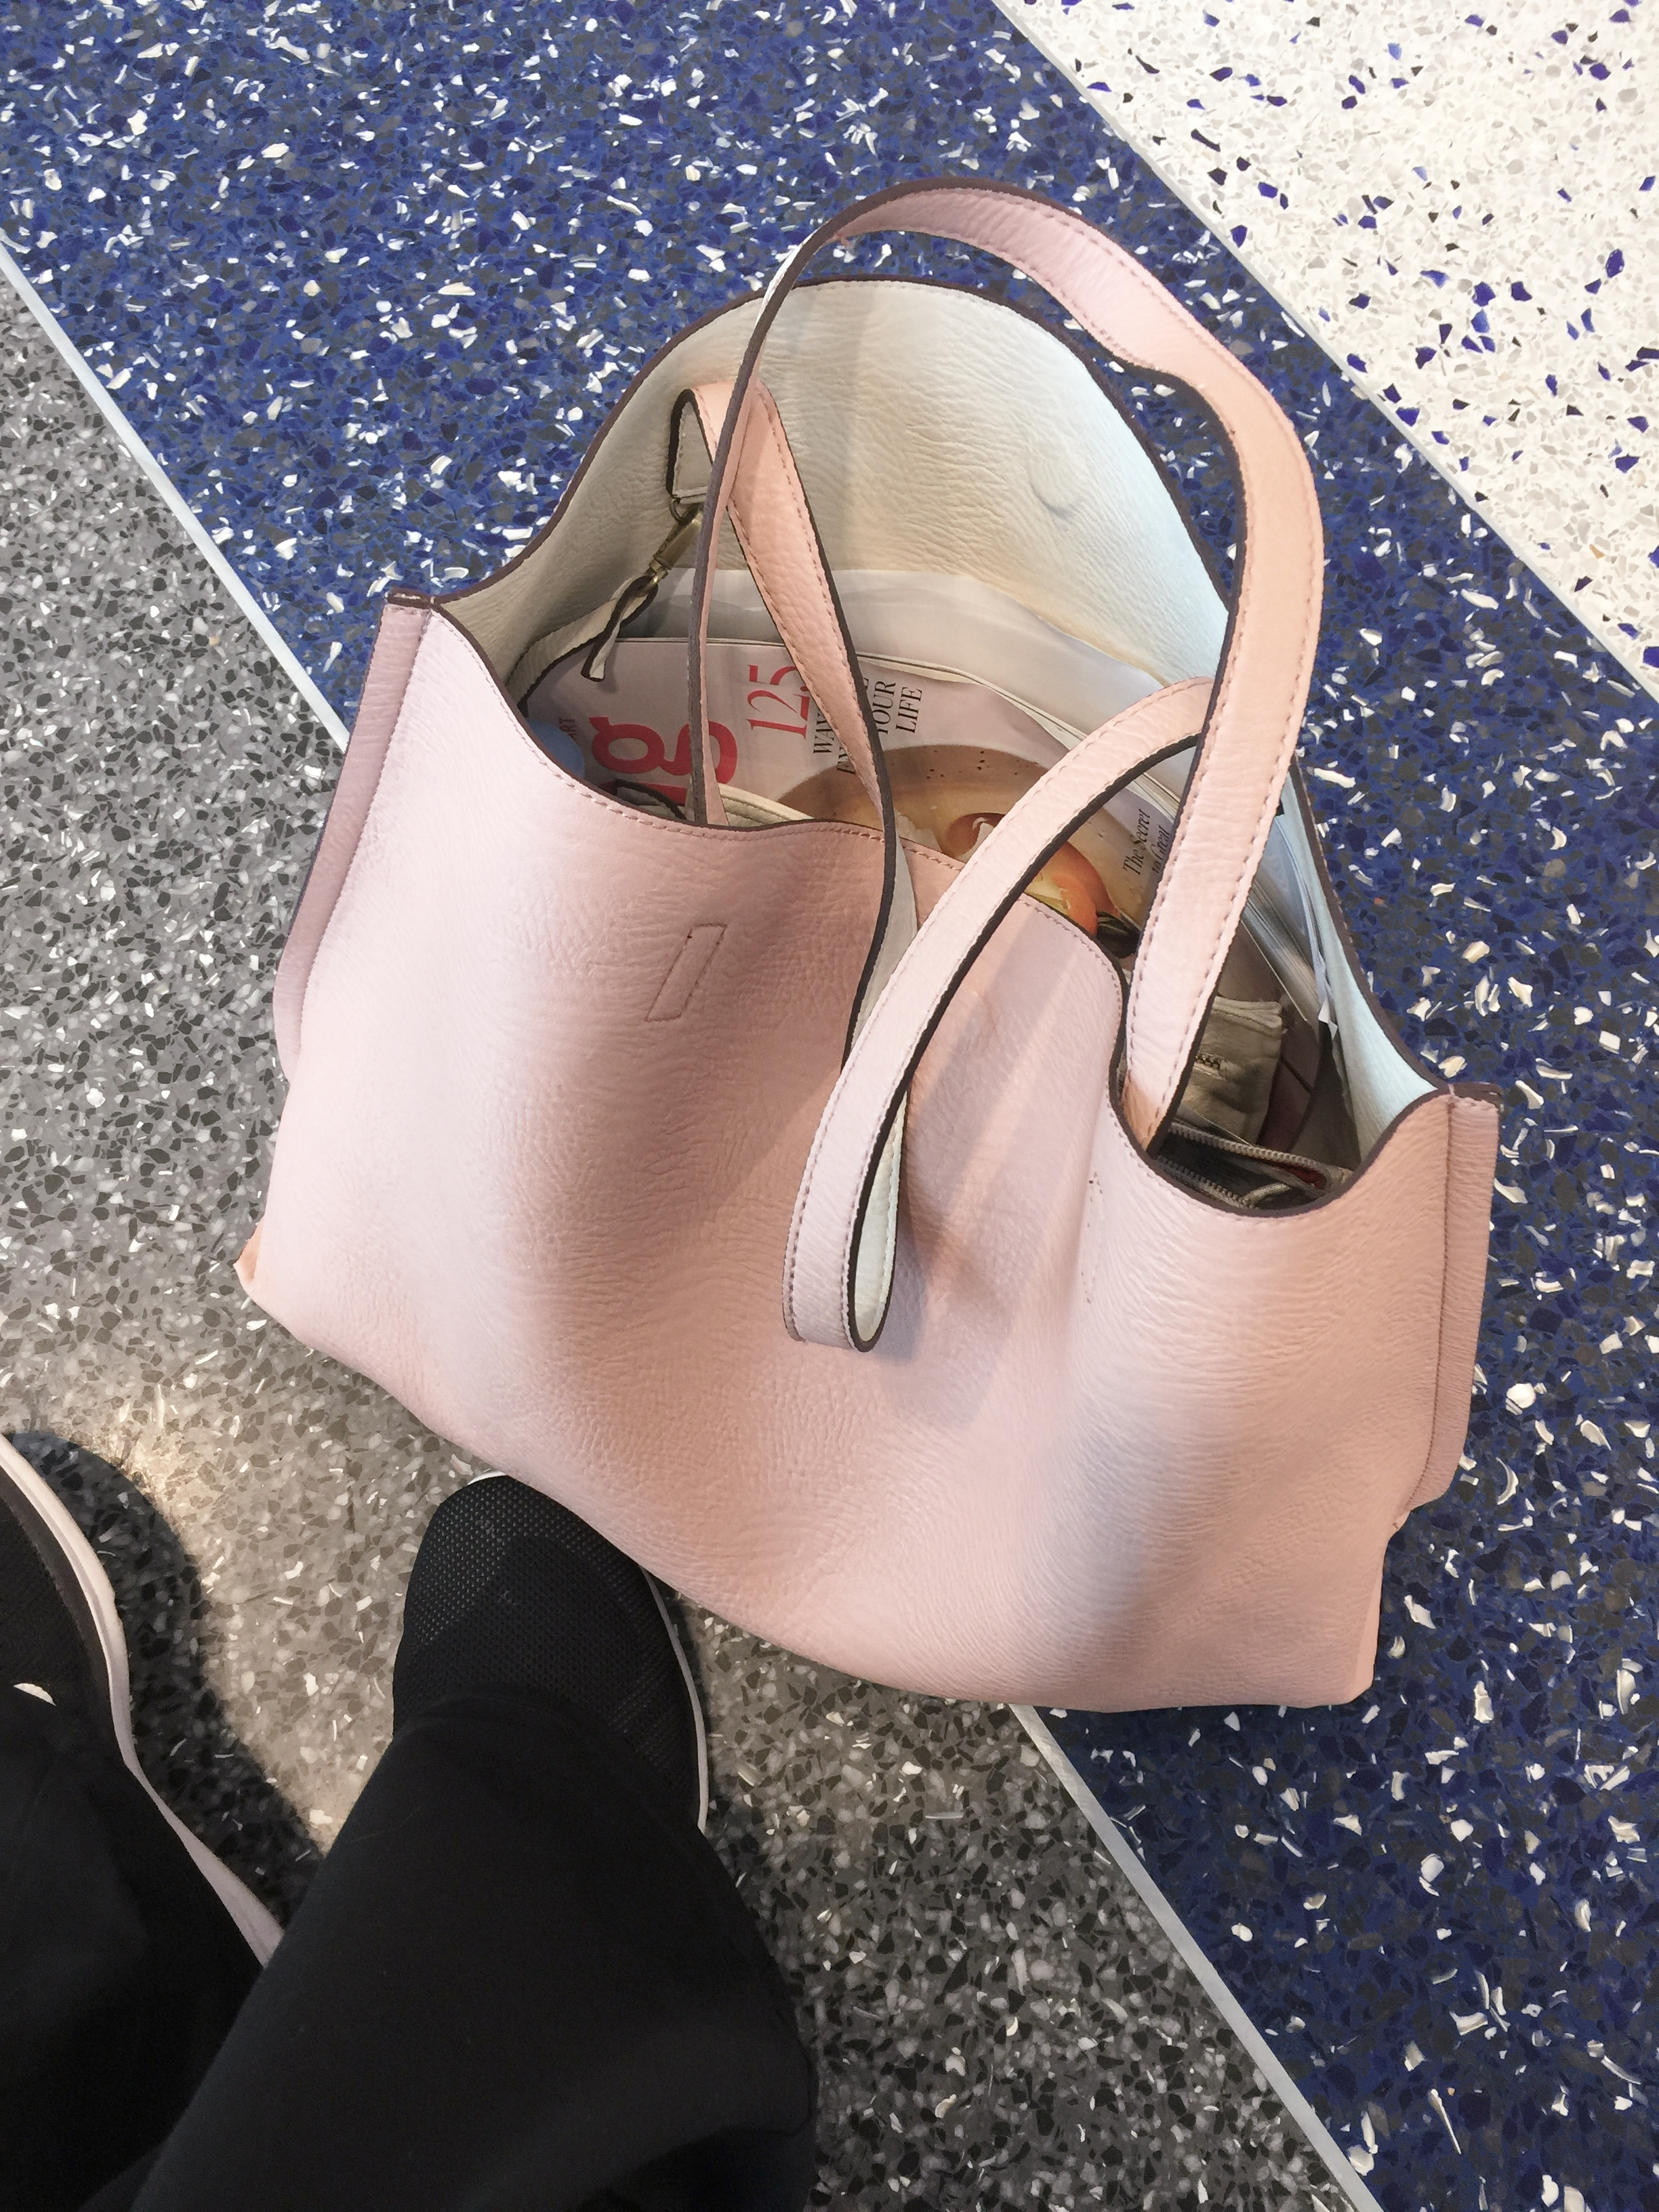 On my way to KBIS2017 in January, with my new pink bag from my own shopping guide!